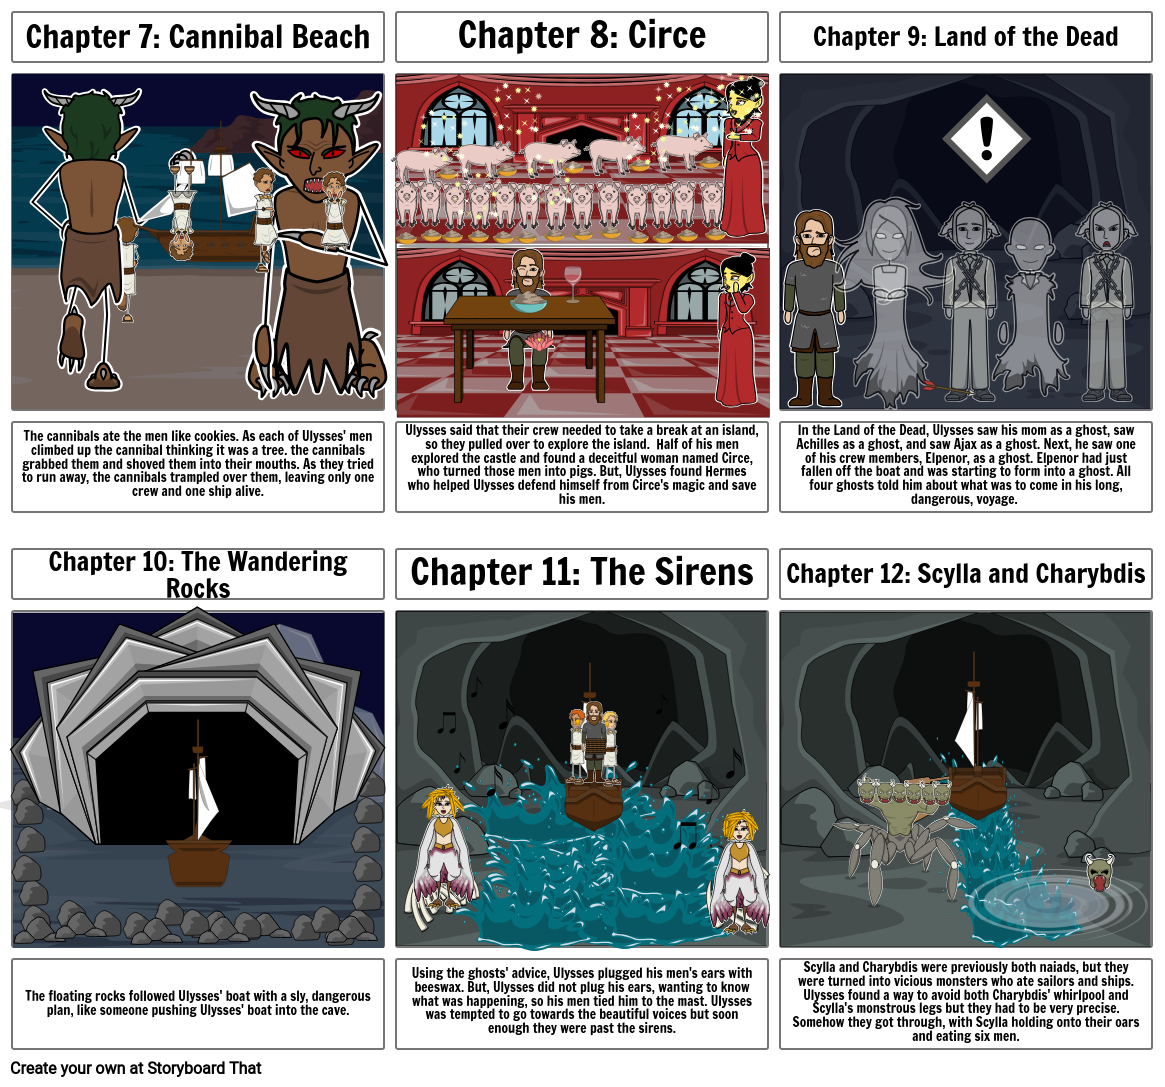 The Odyssey Storyboard: Part 2